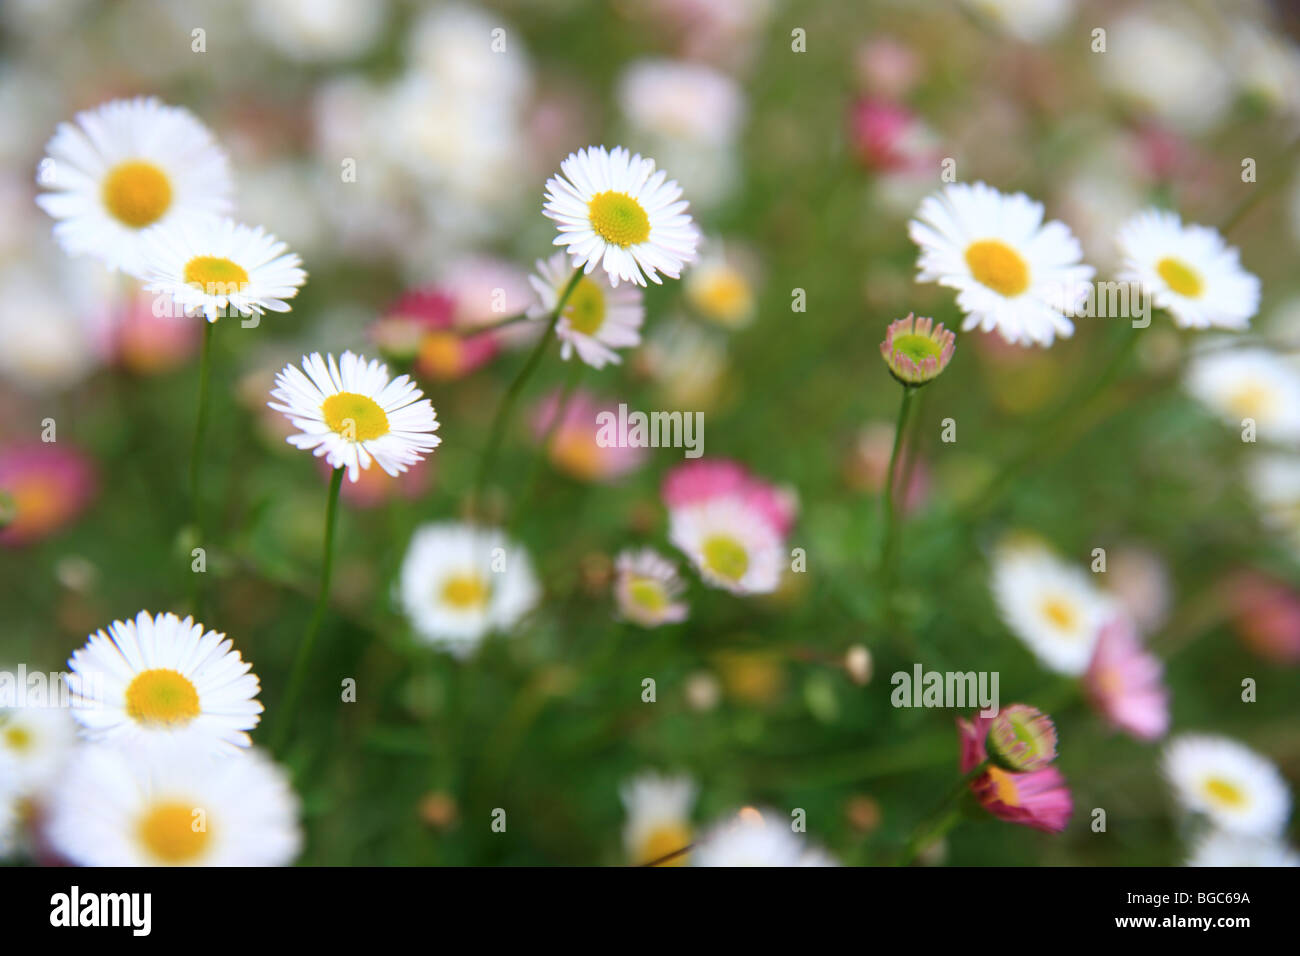 Ground cover daisies stock photos ground cover daisies stock daisy pink white ground cover flowers garden uk stock image mightylinksfo